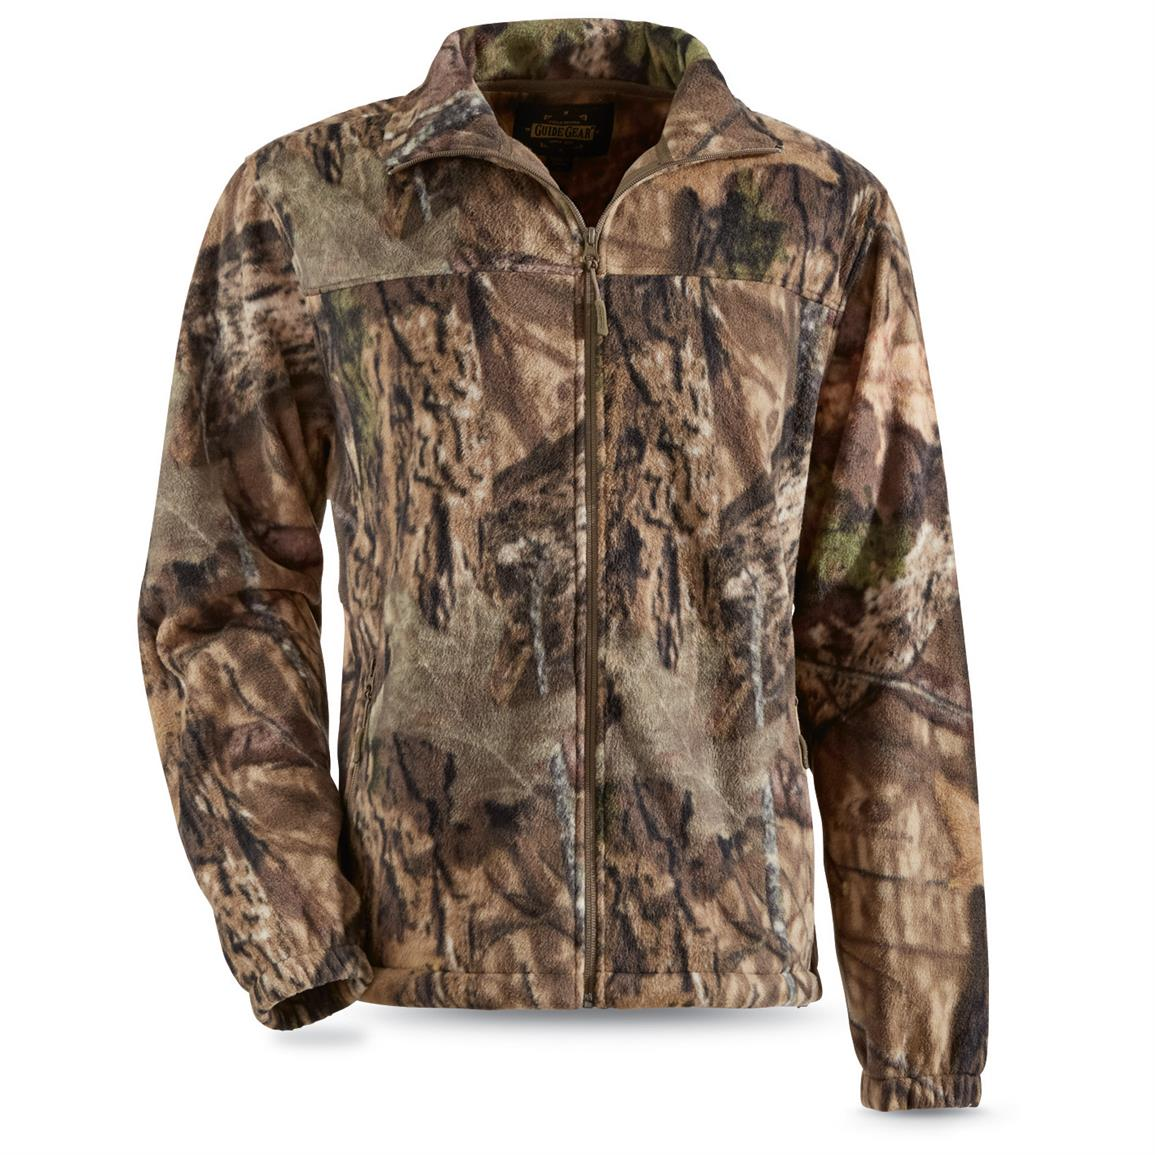 Guide Gear Men's Fleece Full Zip Jacket, Mossy Oak Break-Up Country